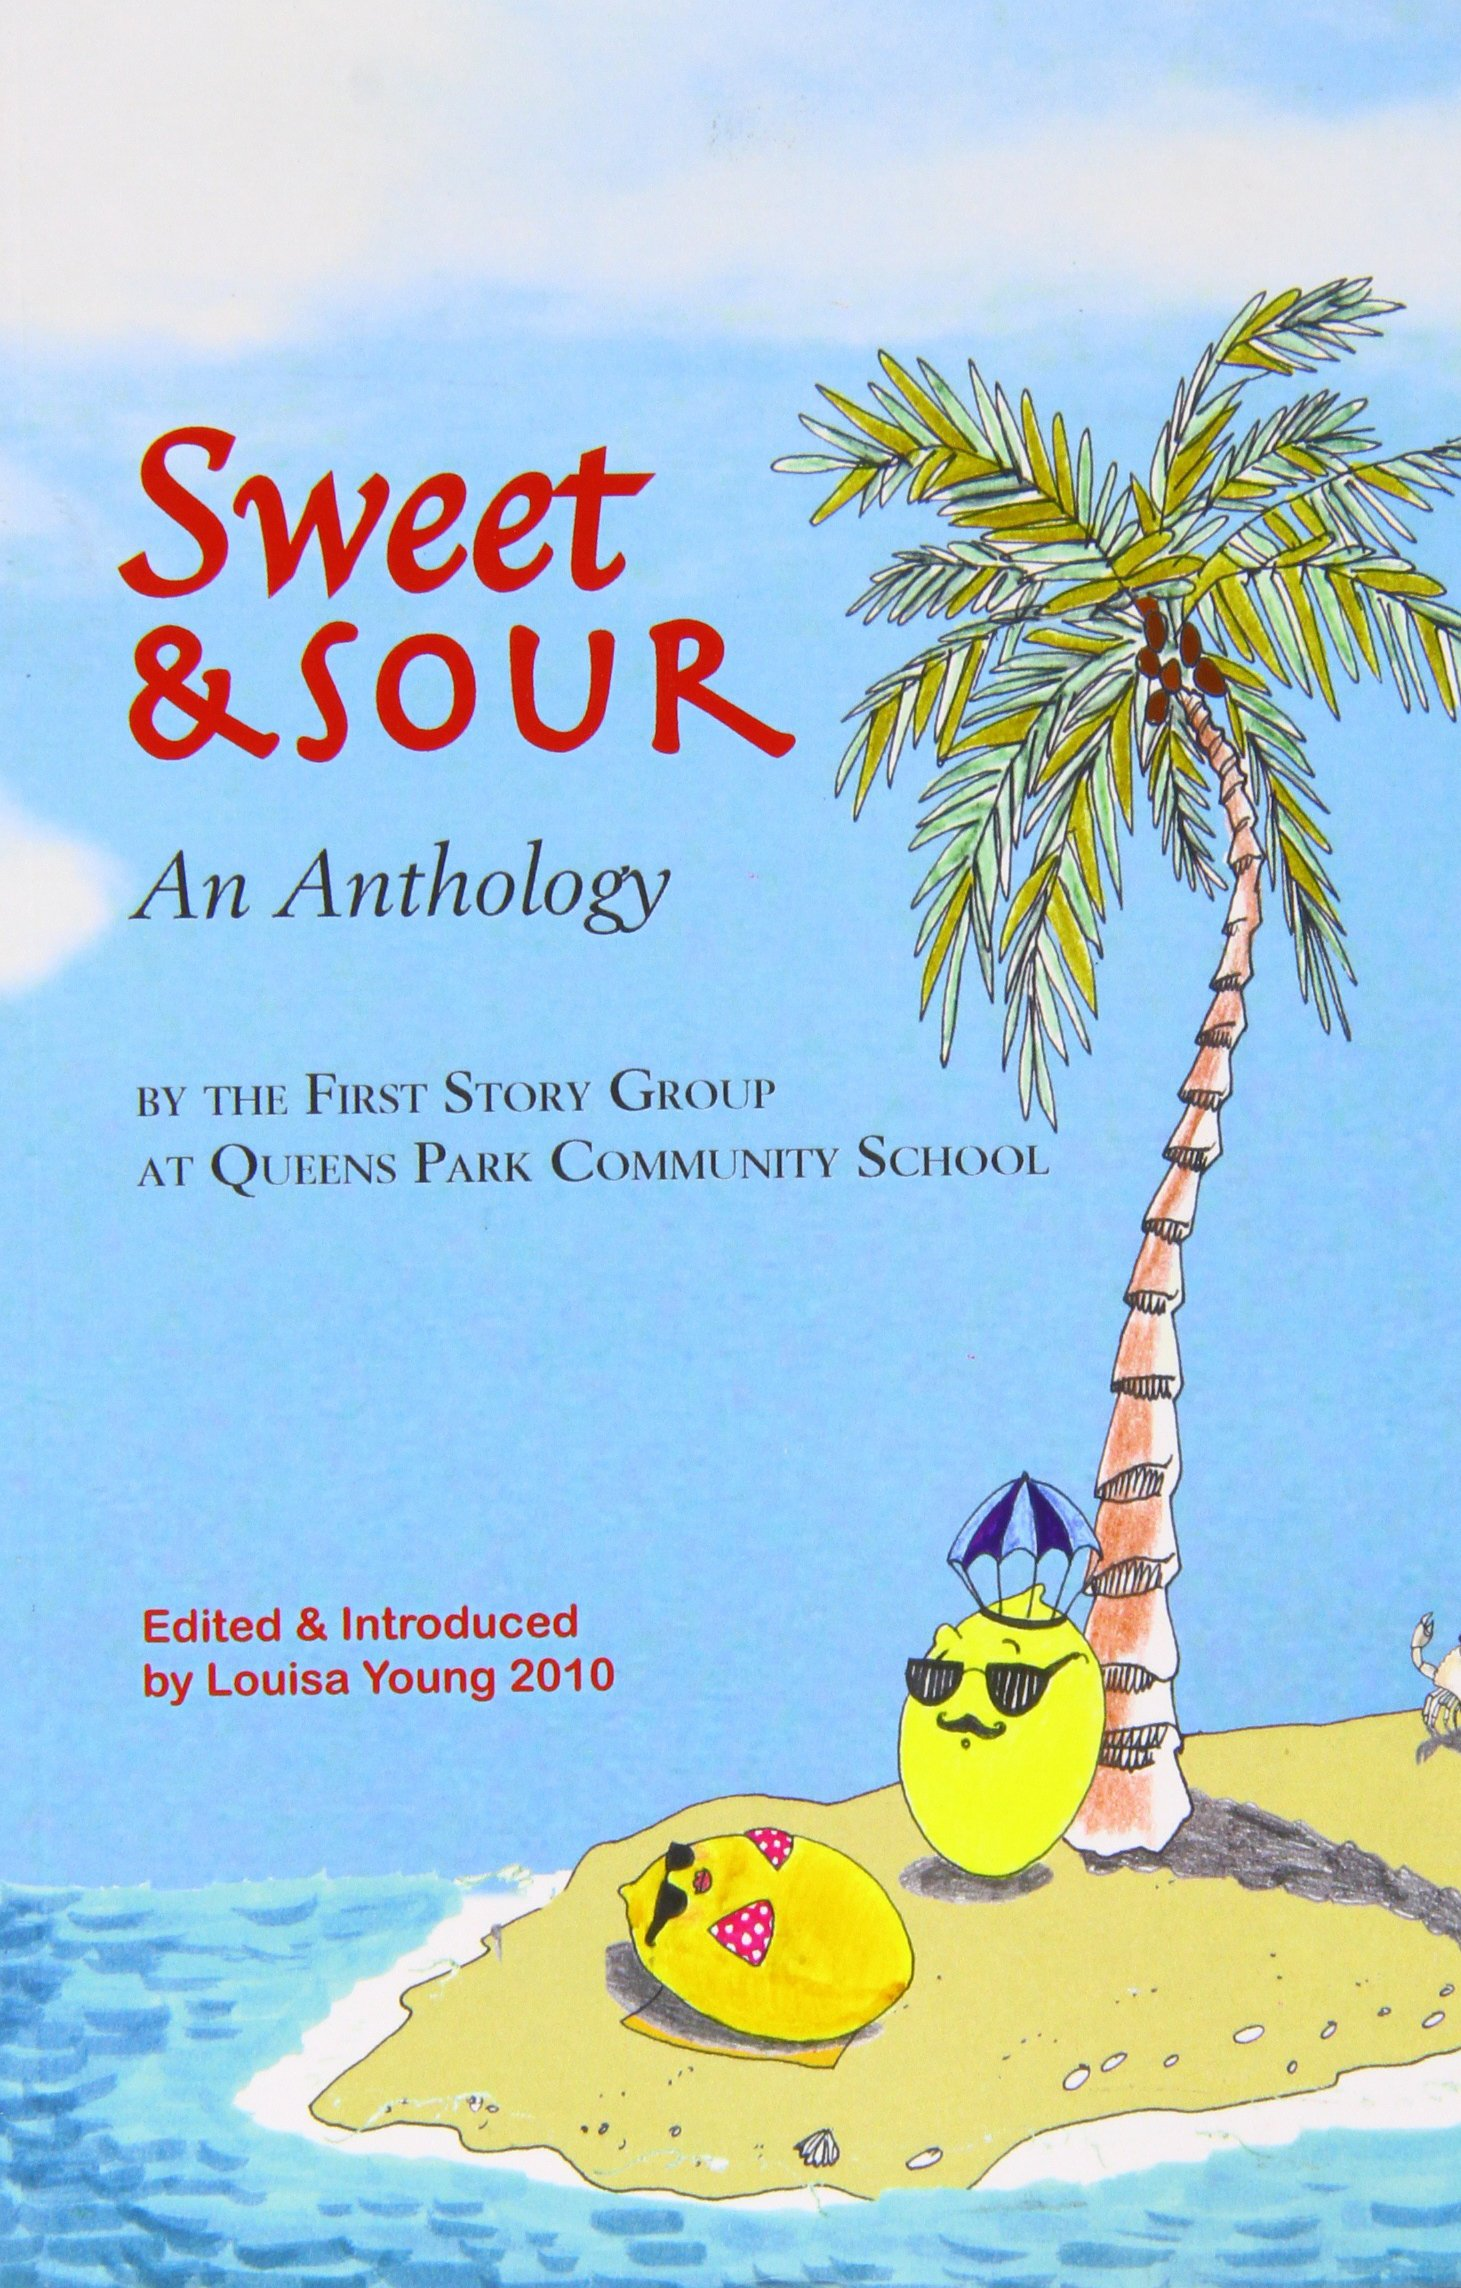 Sweet & Sour: An Anthology by the First Story Group at Queens Park Community School PDF